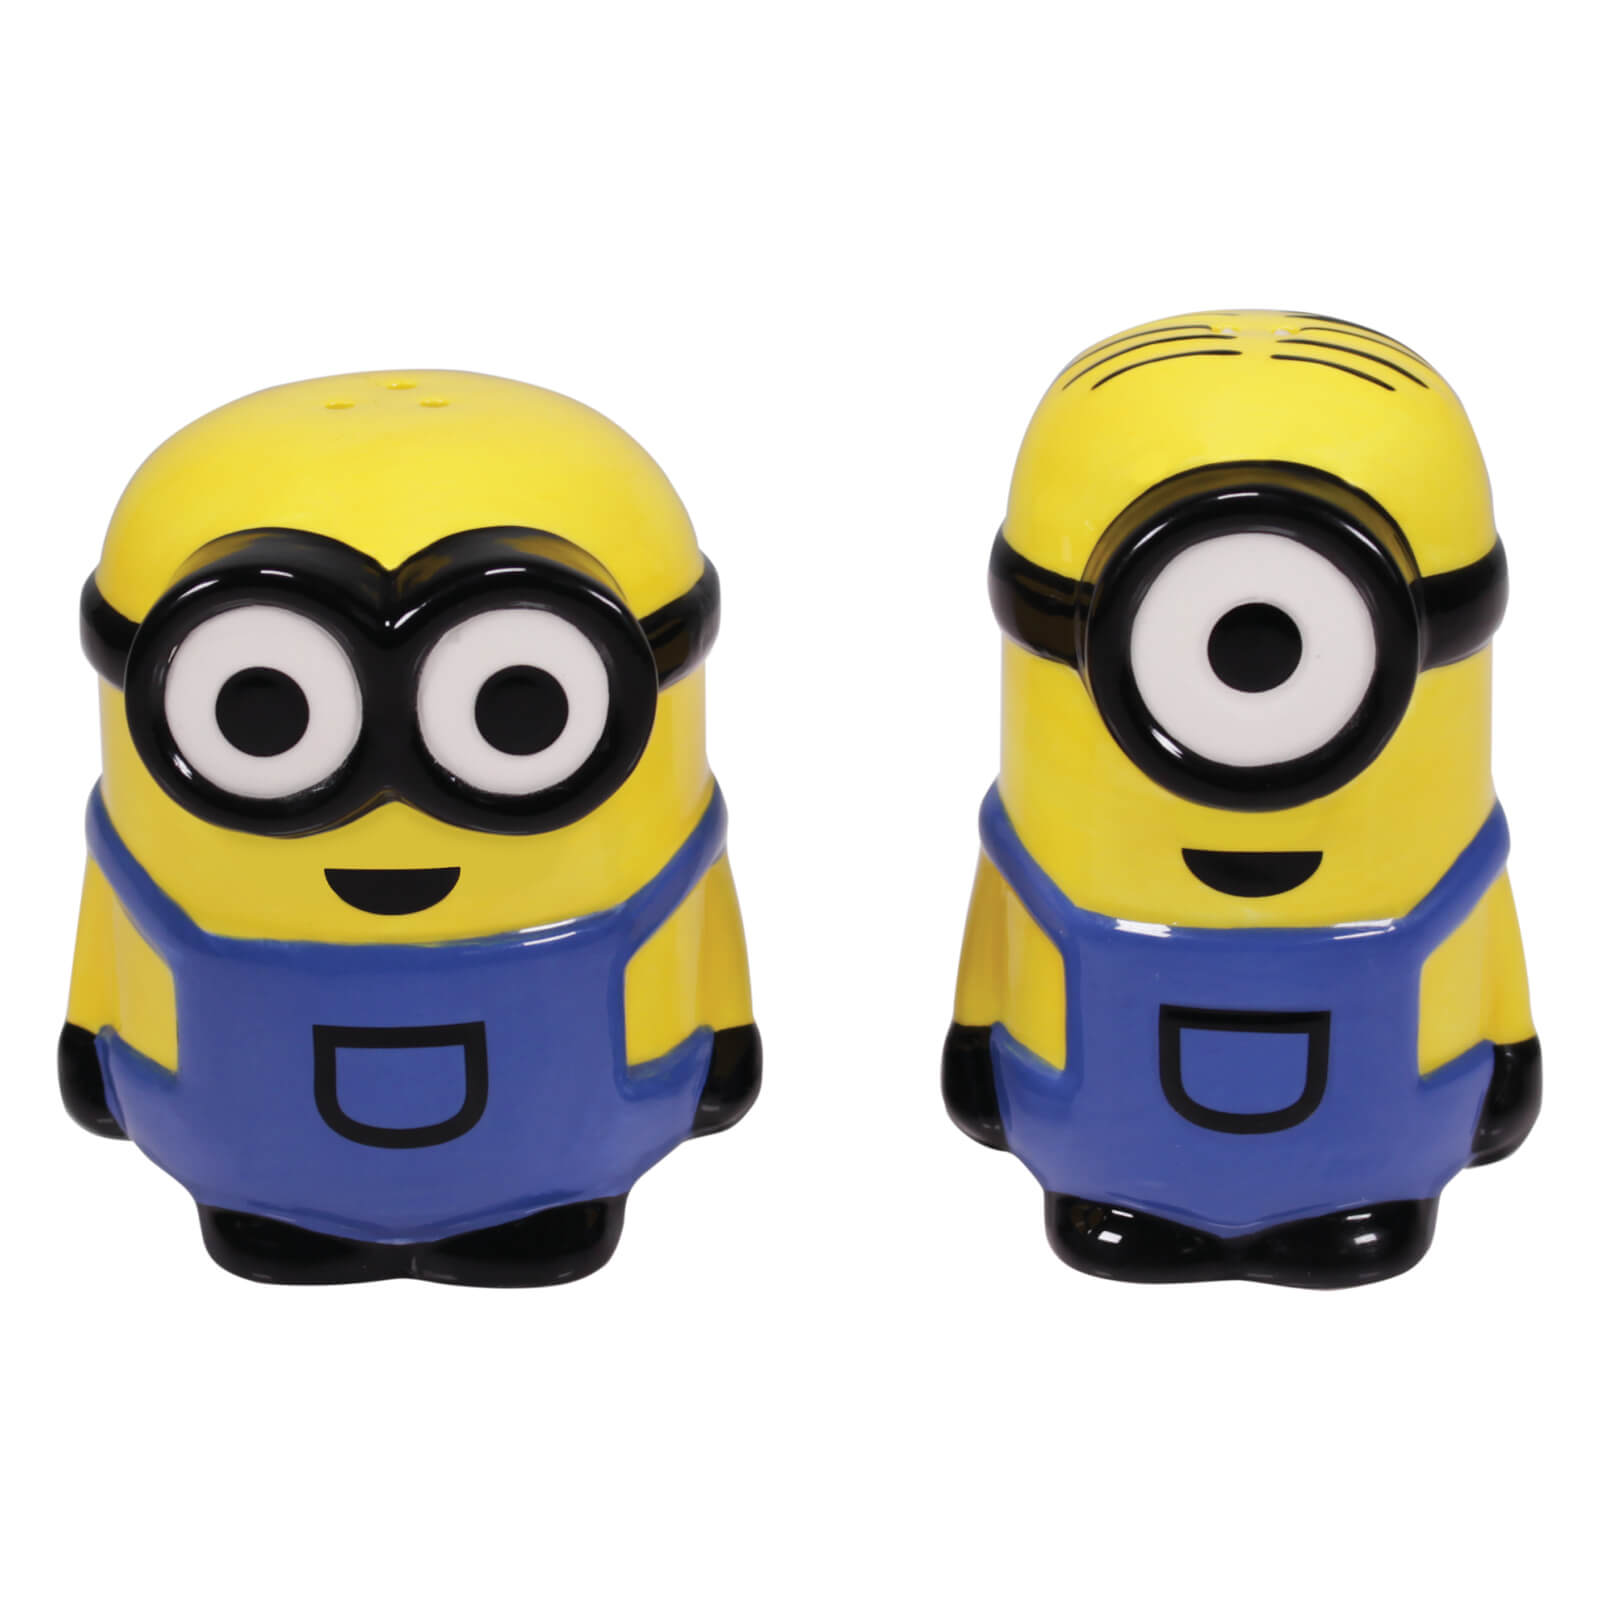 Image of Minions Shaped Salt and Pepper Shakers